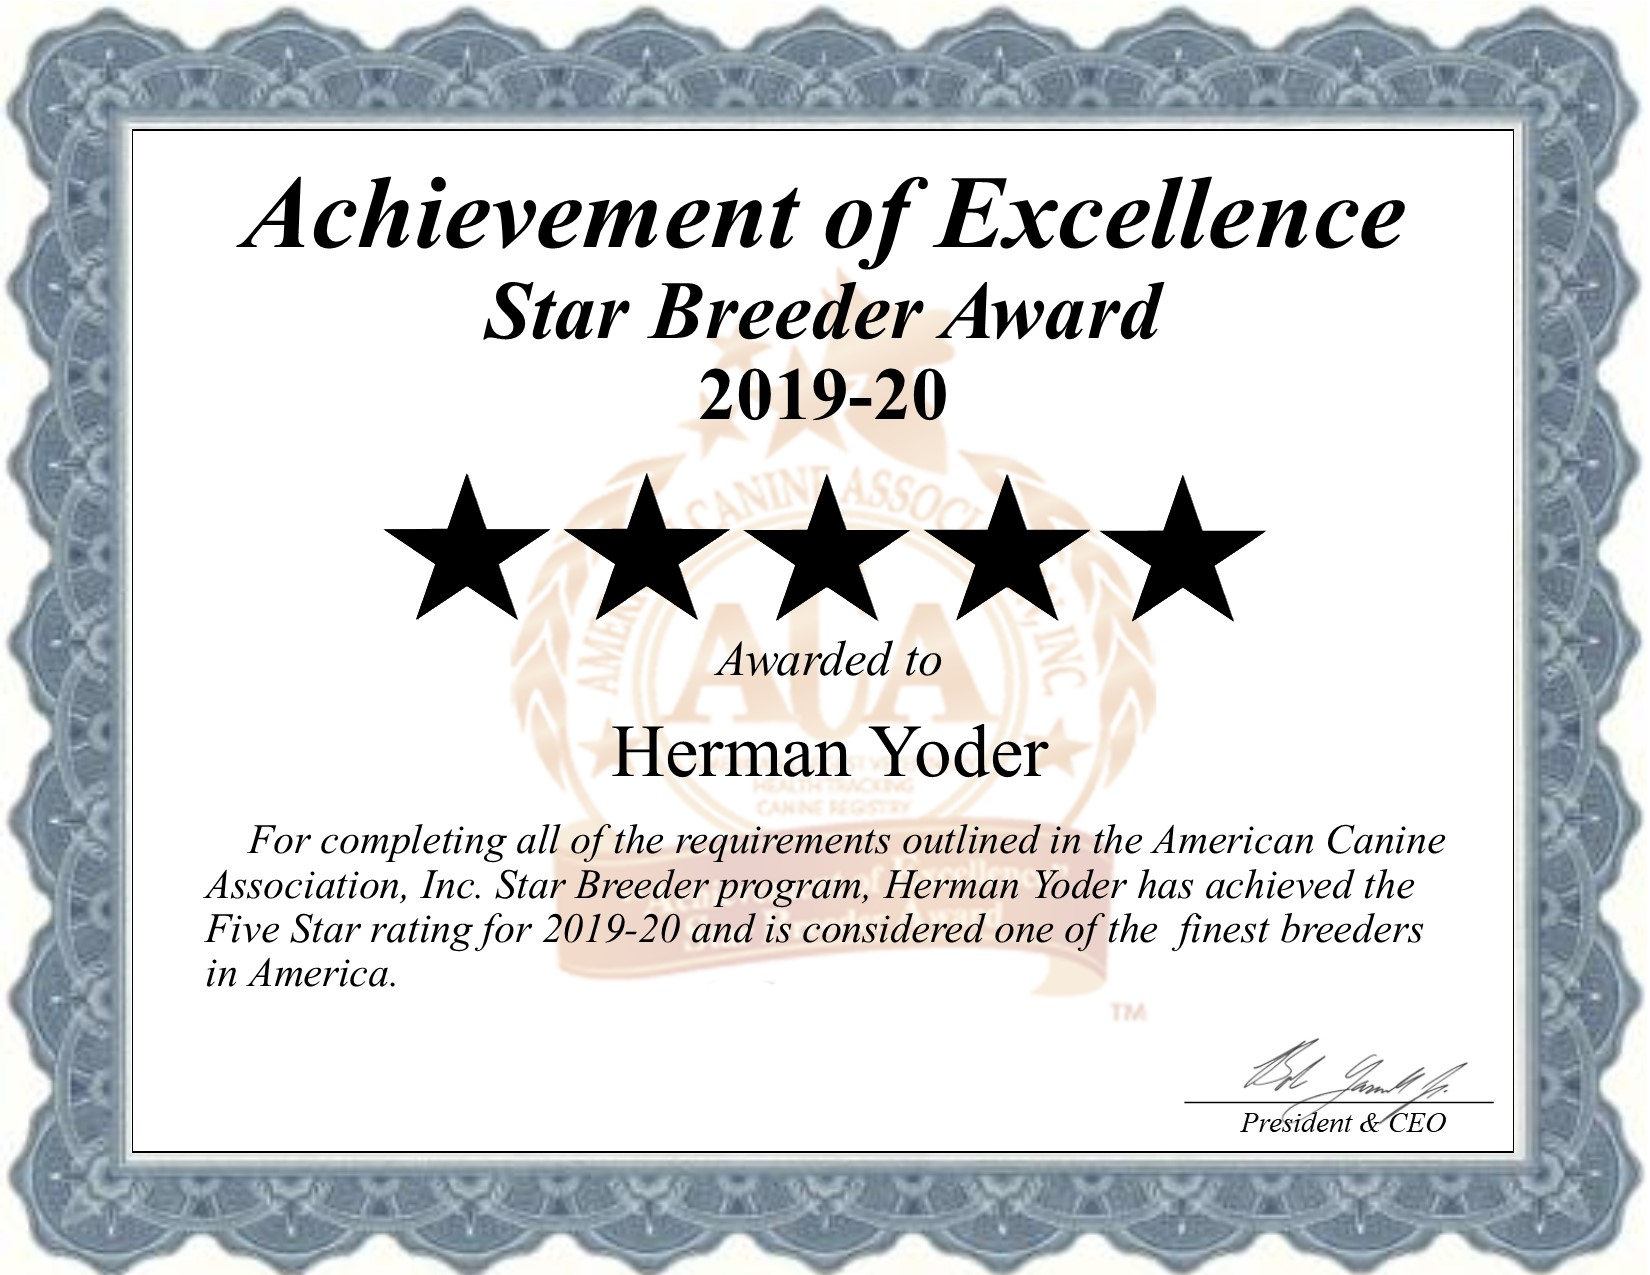 herman, yoder, dog, breeder, certificate, hermam-yoder, dog-breeder, star, award, hersey, mi, michigan, puppies, dog, starbreeder, dogbreeder, puppy, usda, kennels